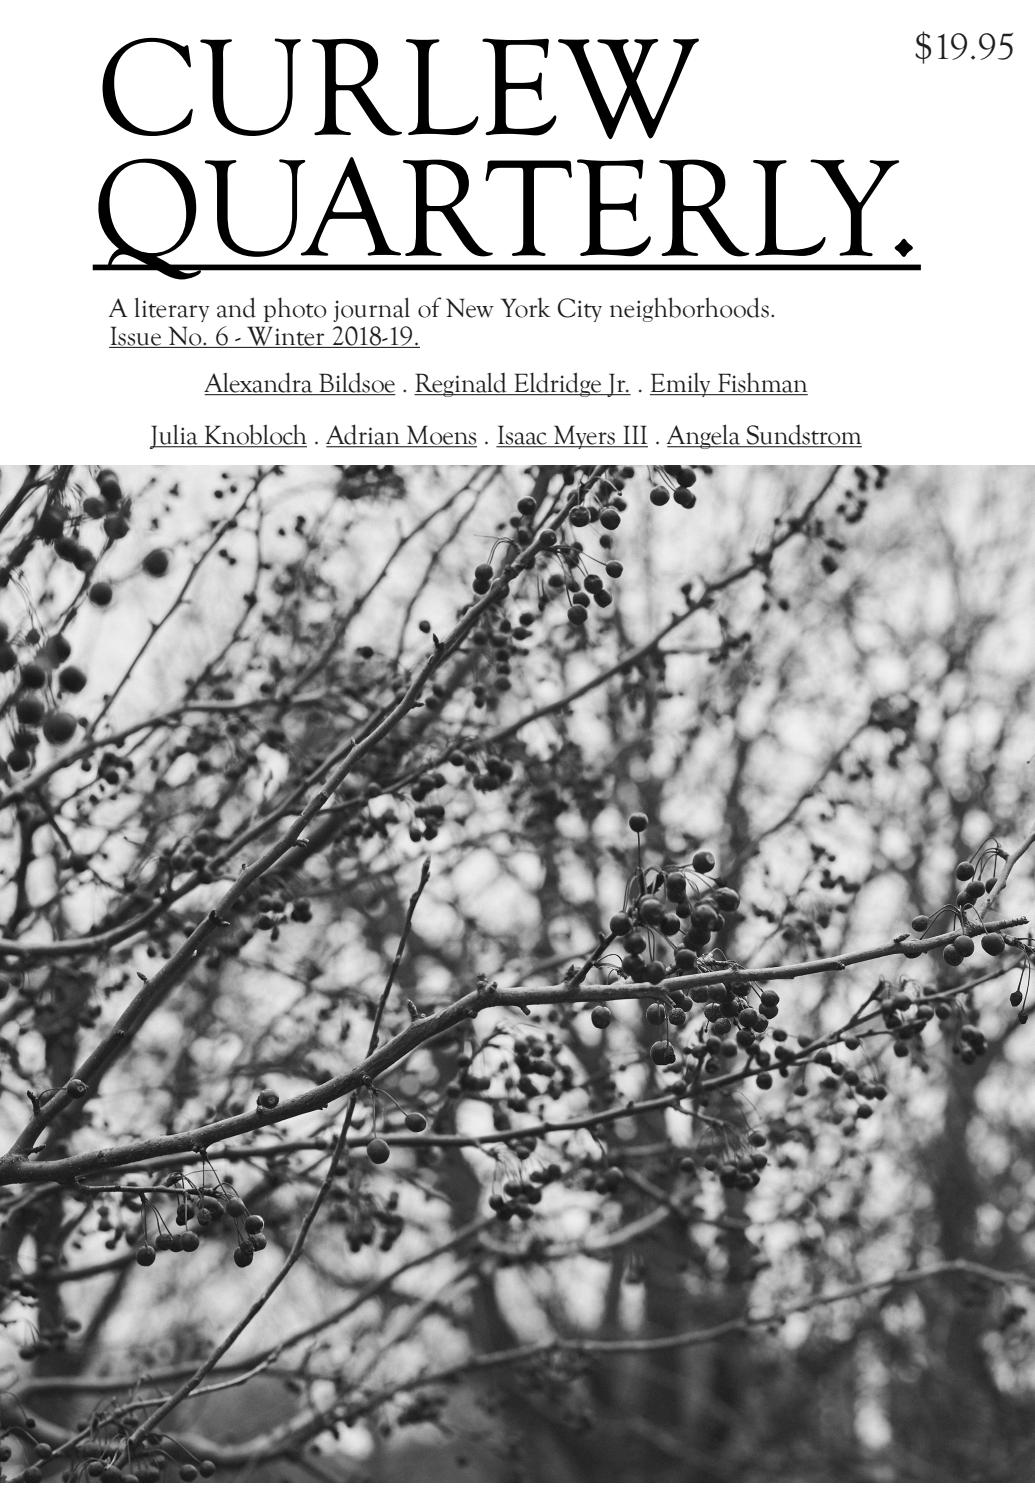 Curlew Quarterly - Issue No  6 - Winter 2018-19 by